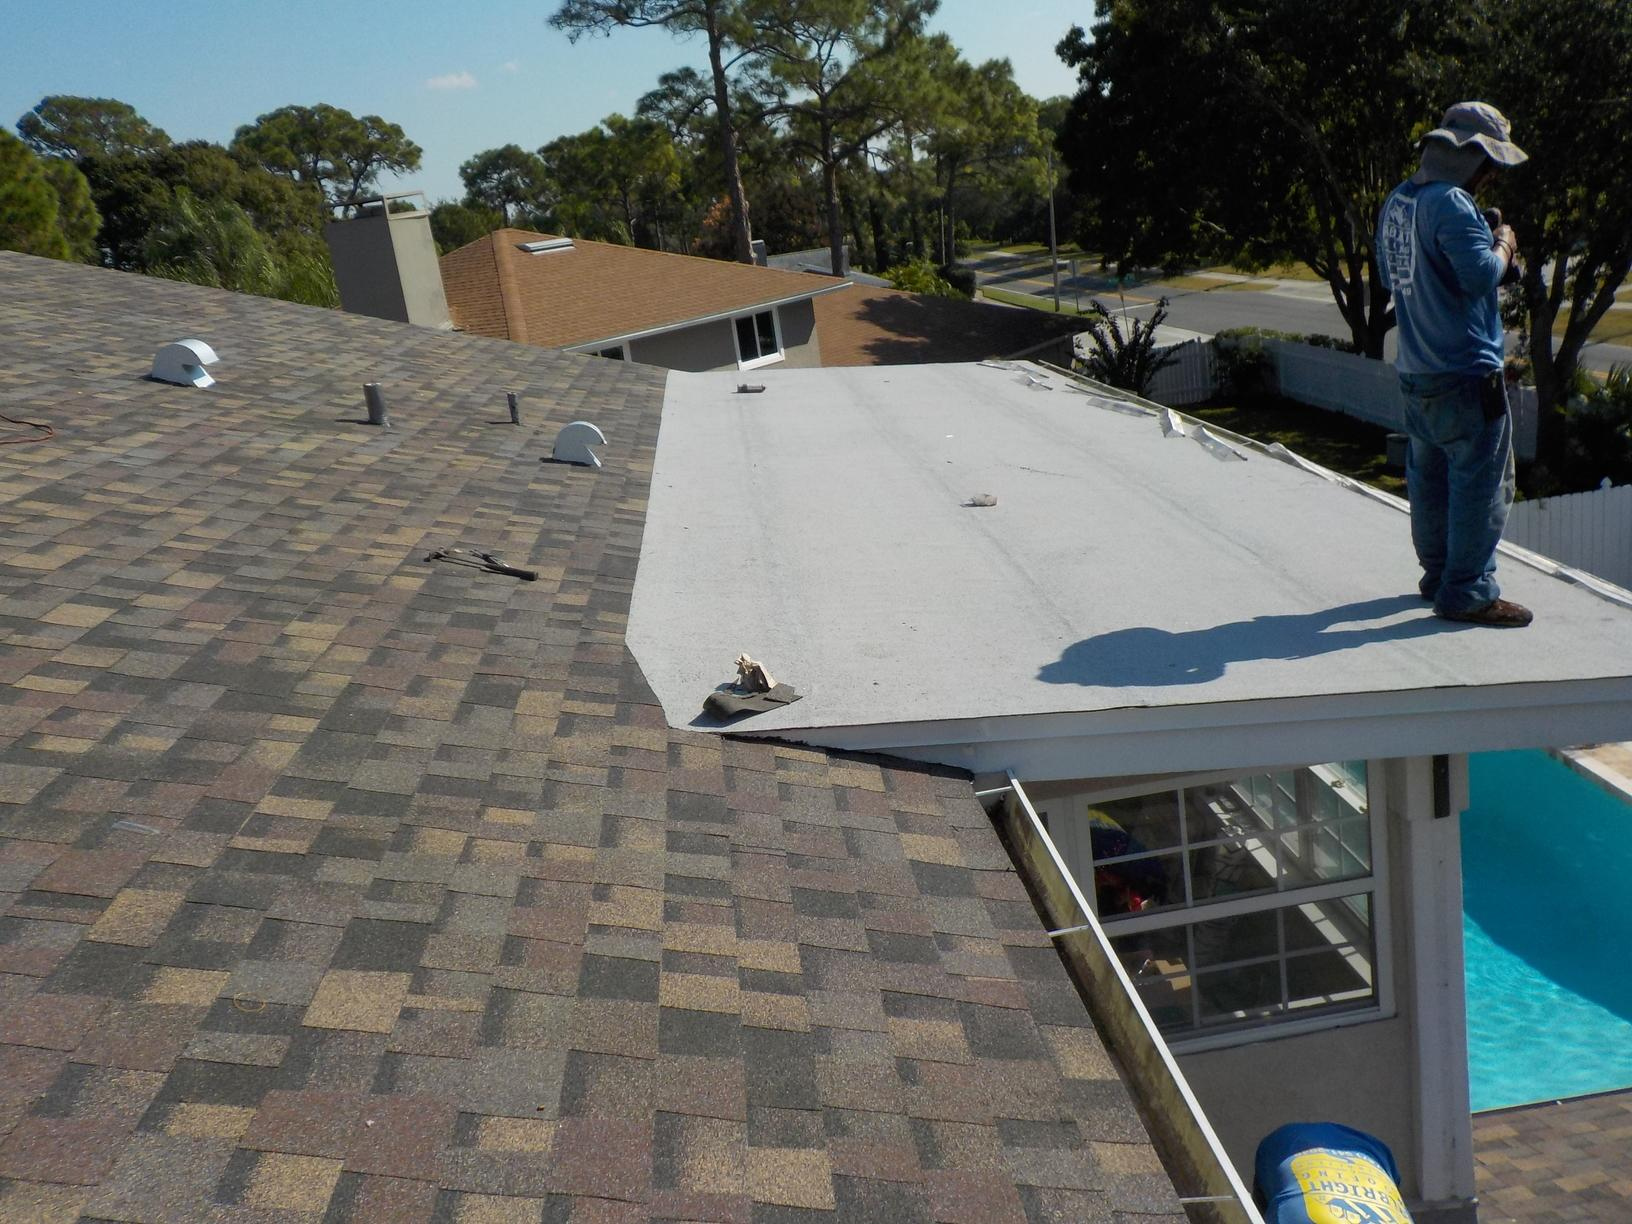 Shingle & Flat Roof Replacement in Clearwater, FL